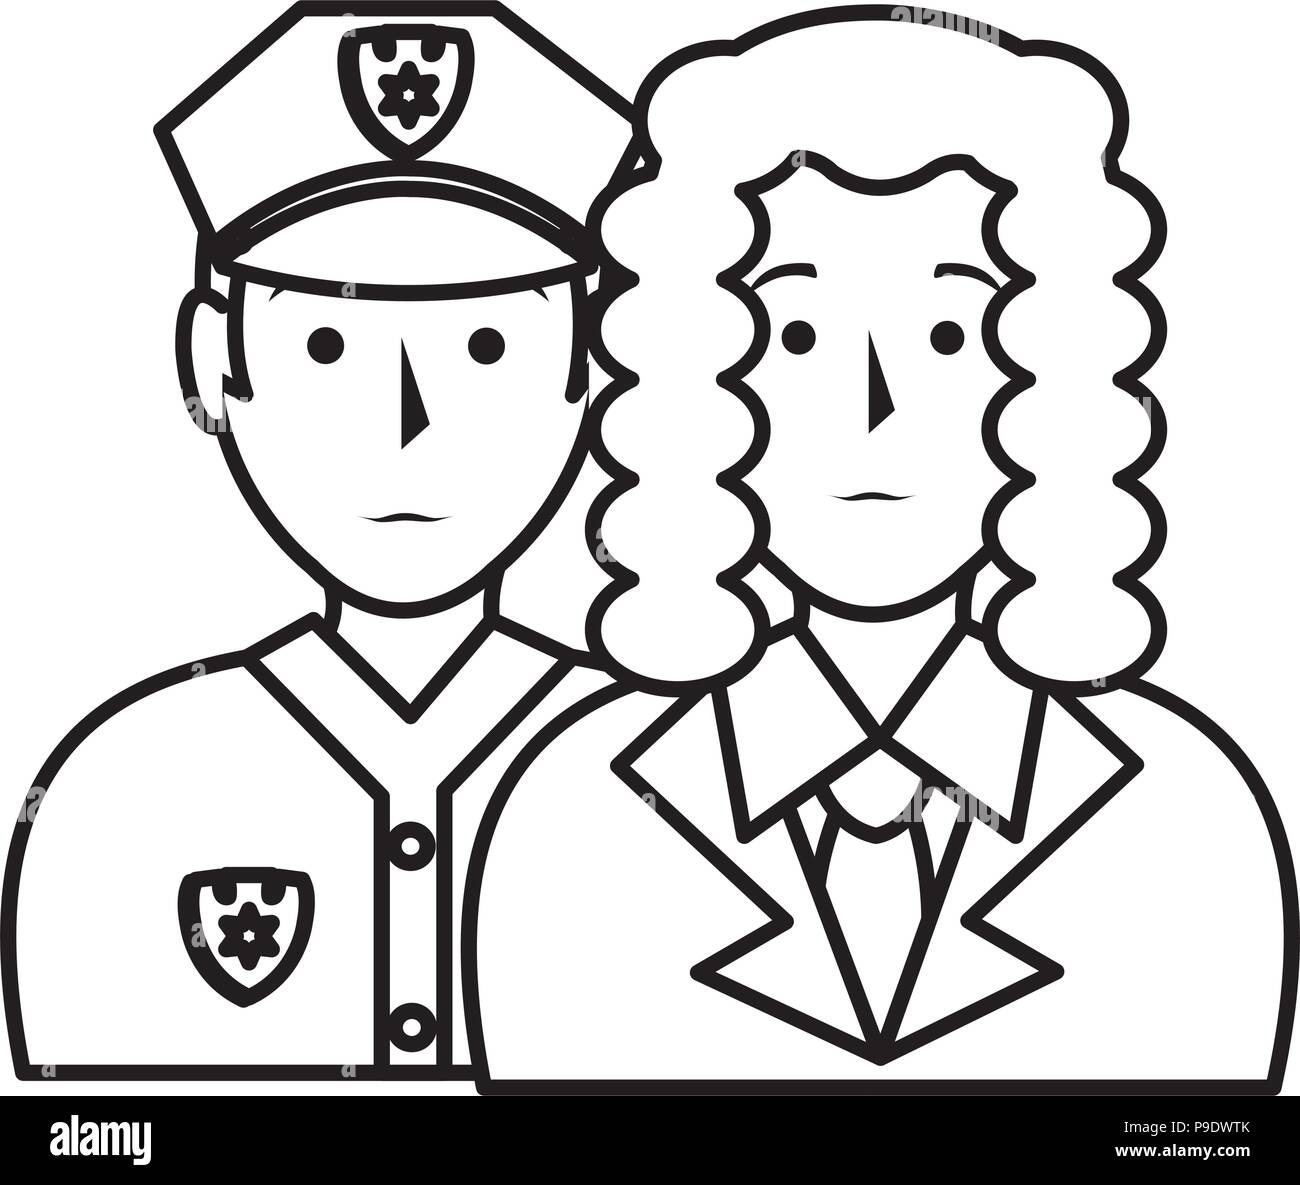 Police Characters Stock Photos Police Characters Stock Images Alamy